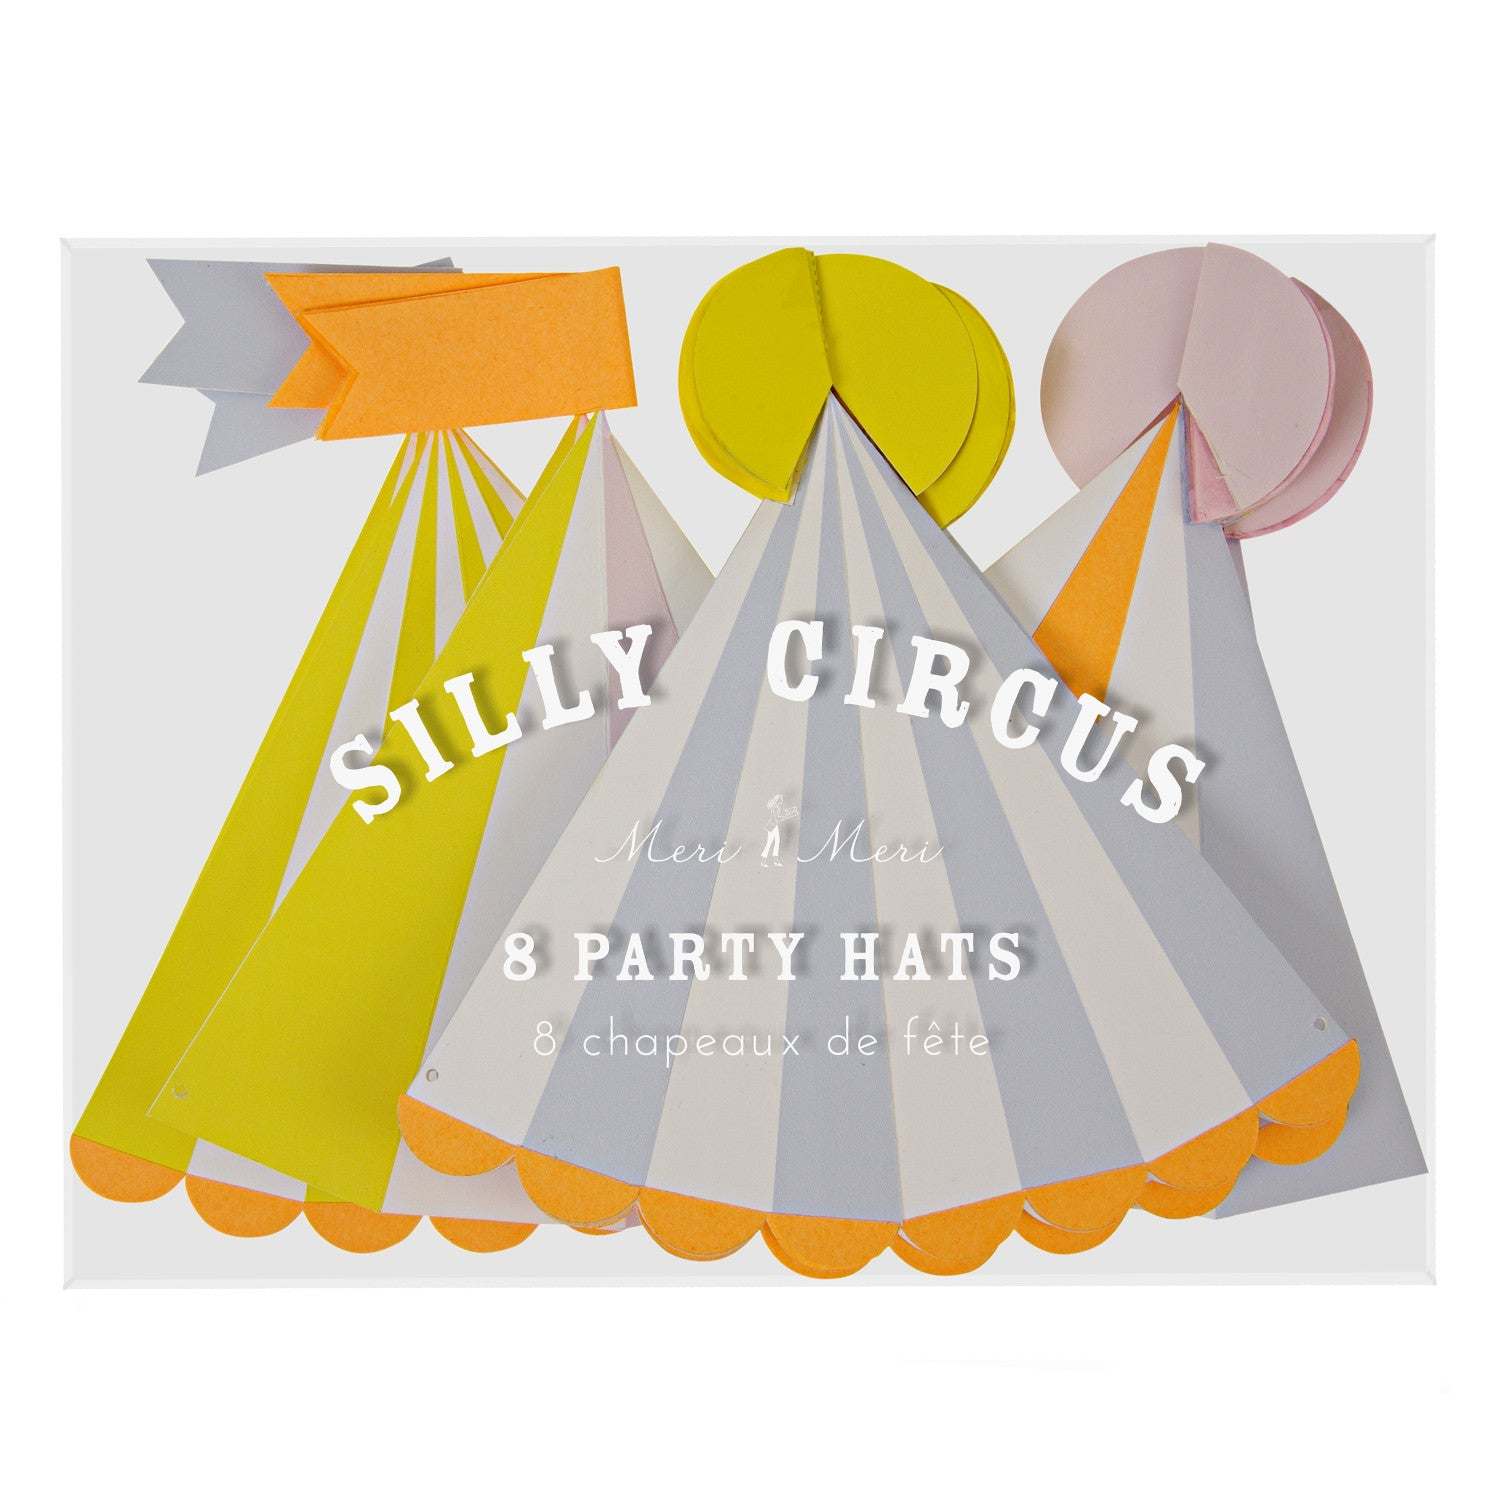 Silly Circus Party Hats by Meri Meri - Little Citizens Boutique  - 1